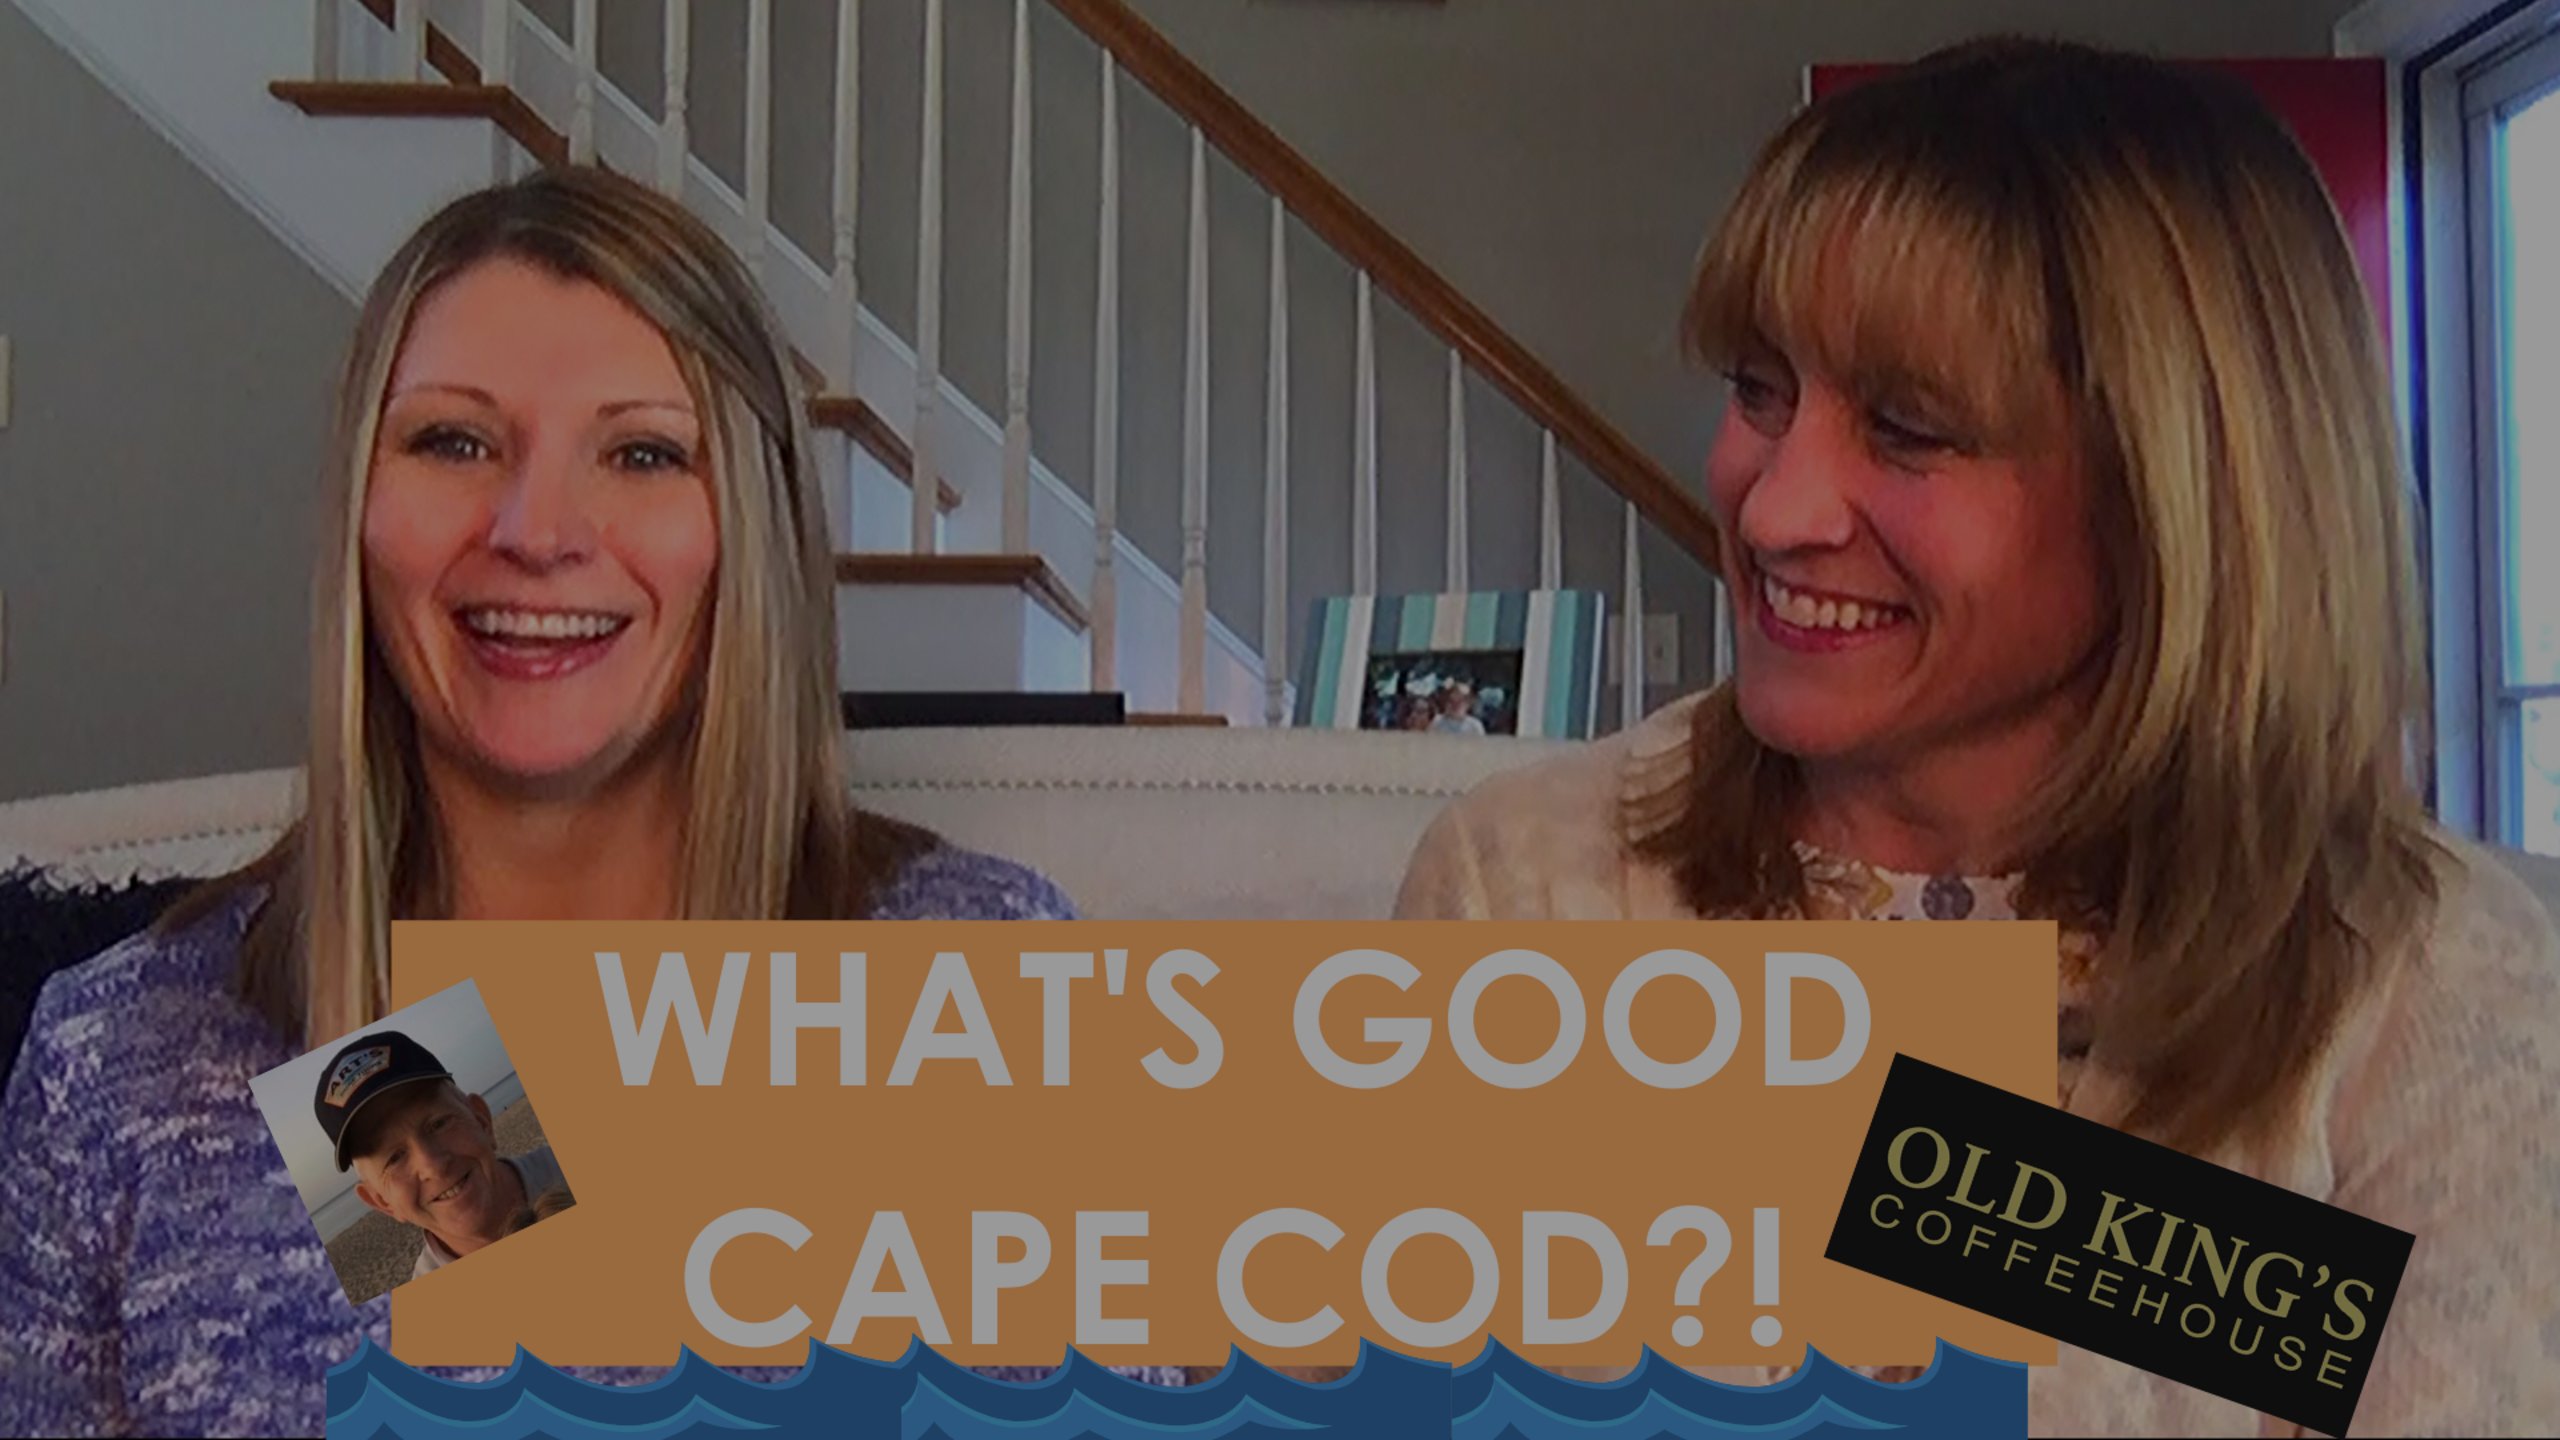 Episode 78: What's Good Cape Cod?!